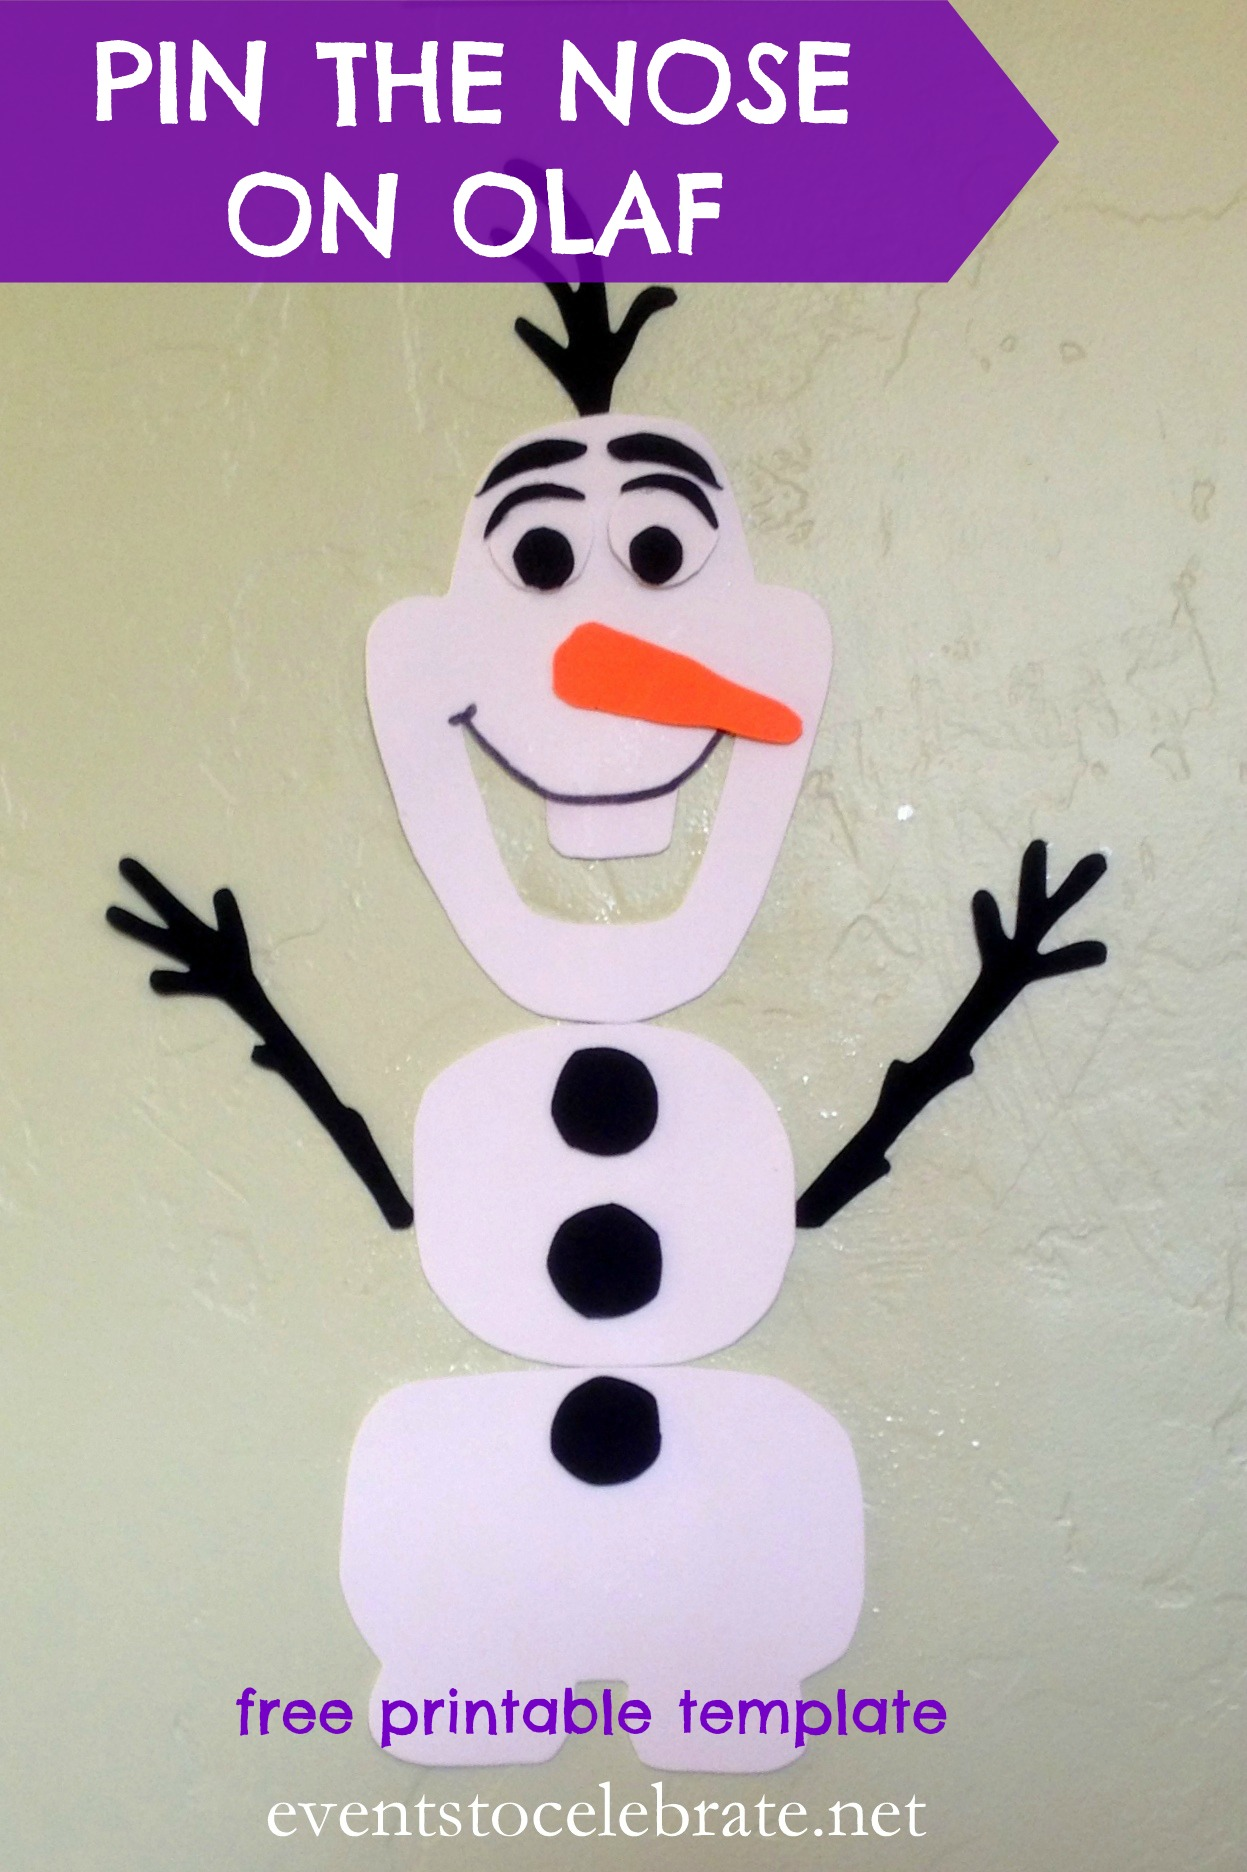 Olafs nose template for pin the nose on olaf party invitations ideas